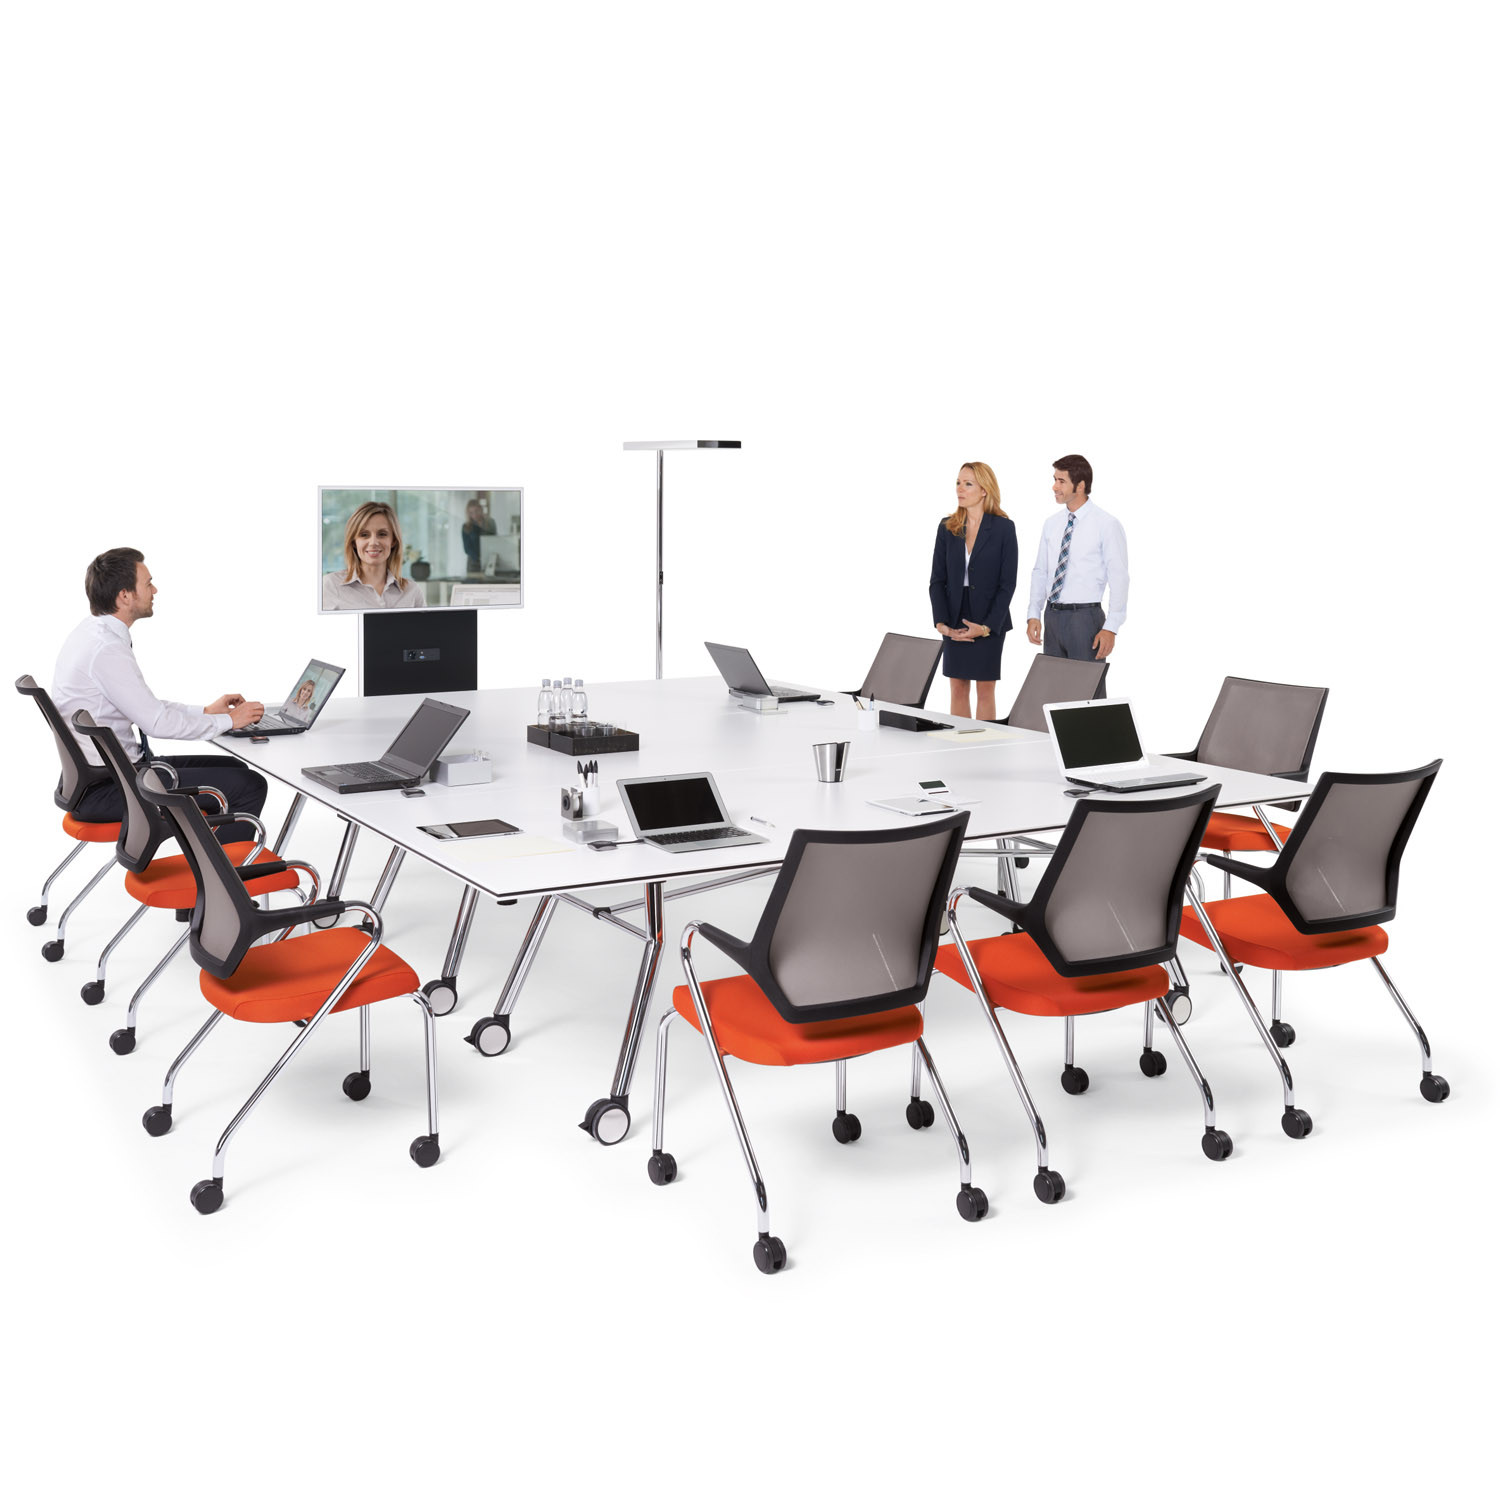 Sedus Mastermind Foldable Meeting Table